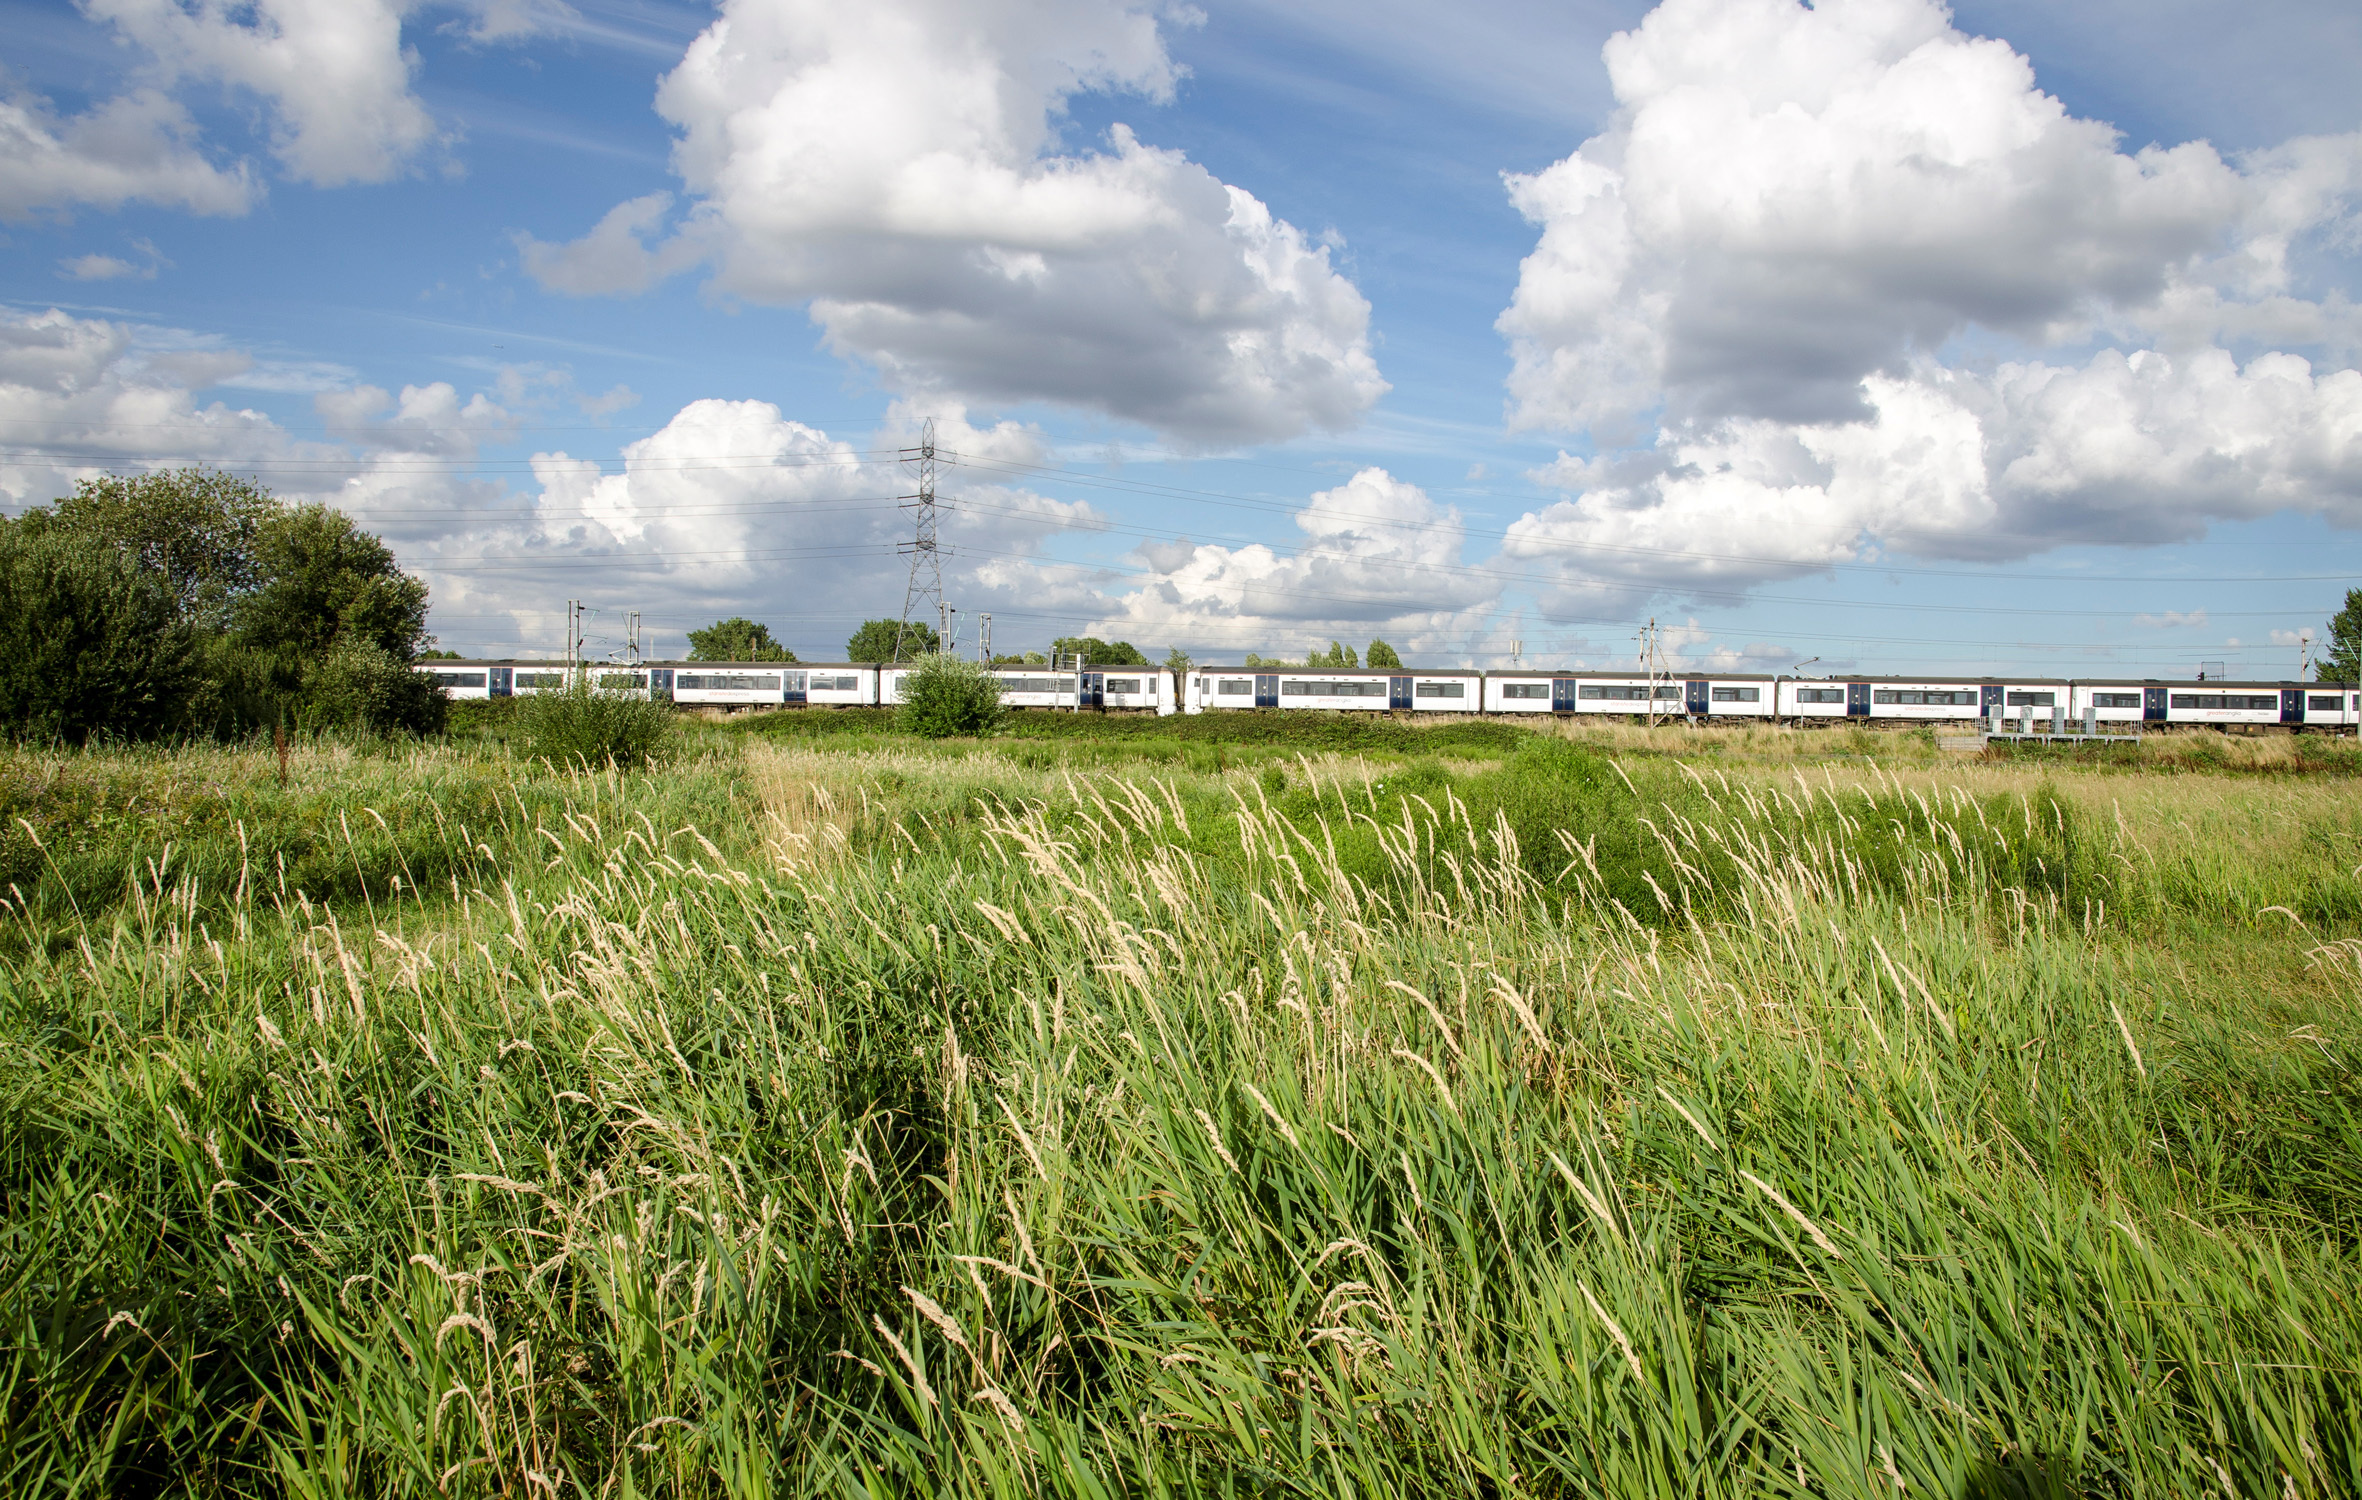 Explore: Walthamstow Marshes